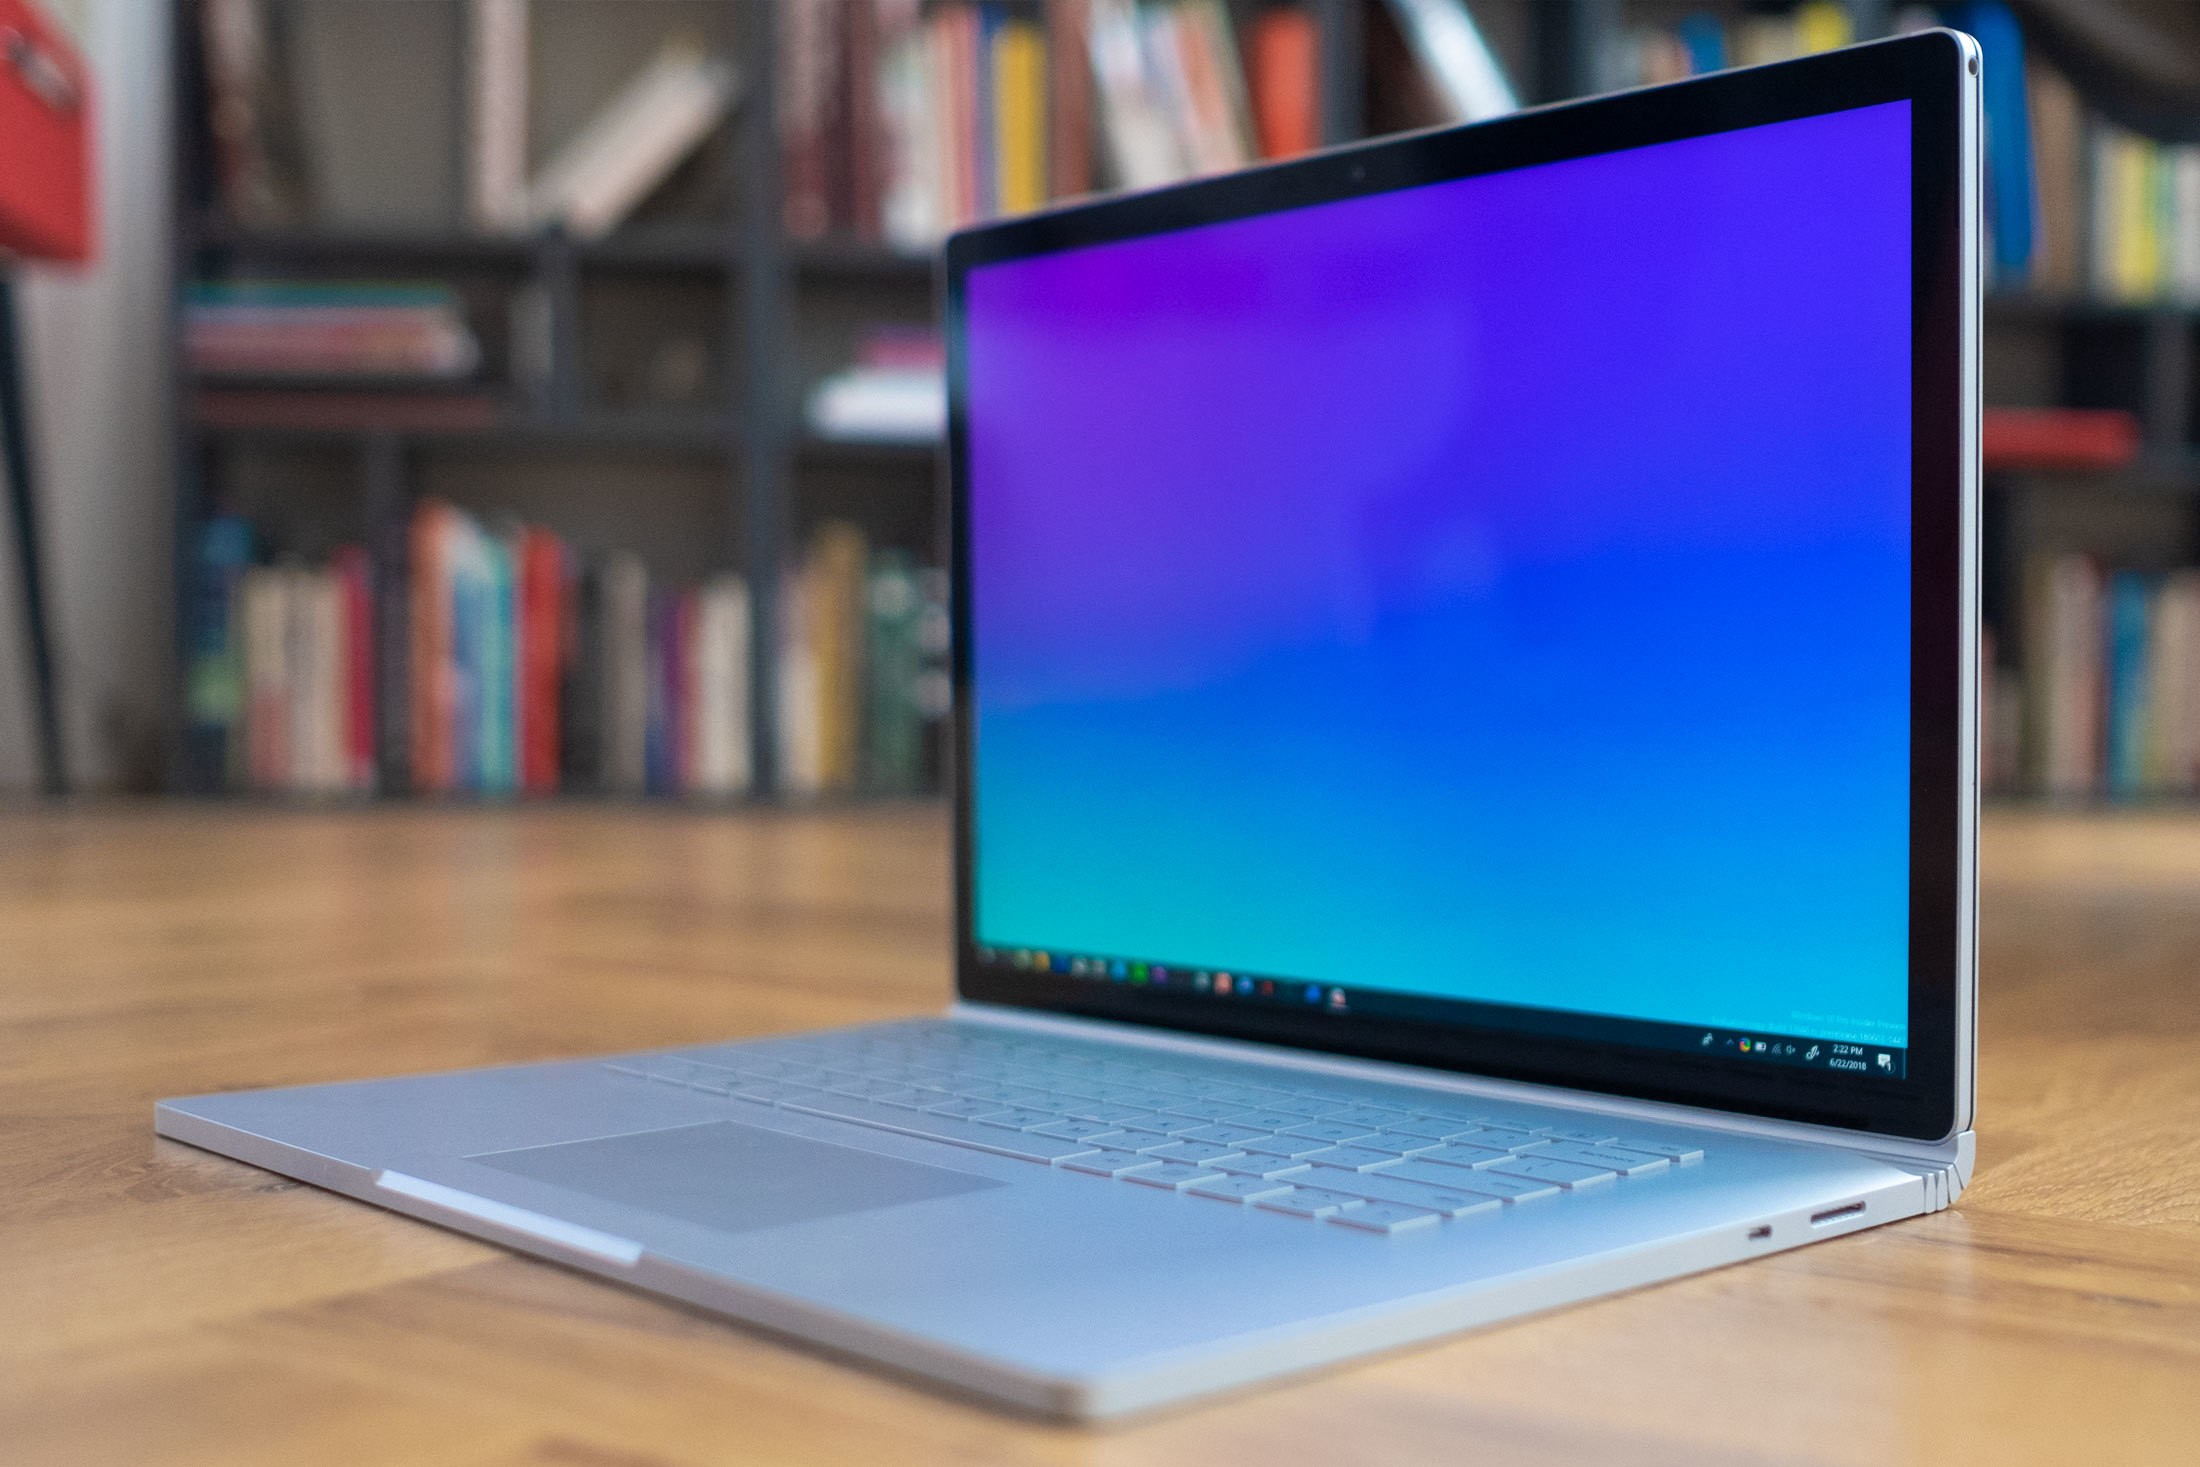 The Surface Book 2 is everything the MacBook Pro should be